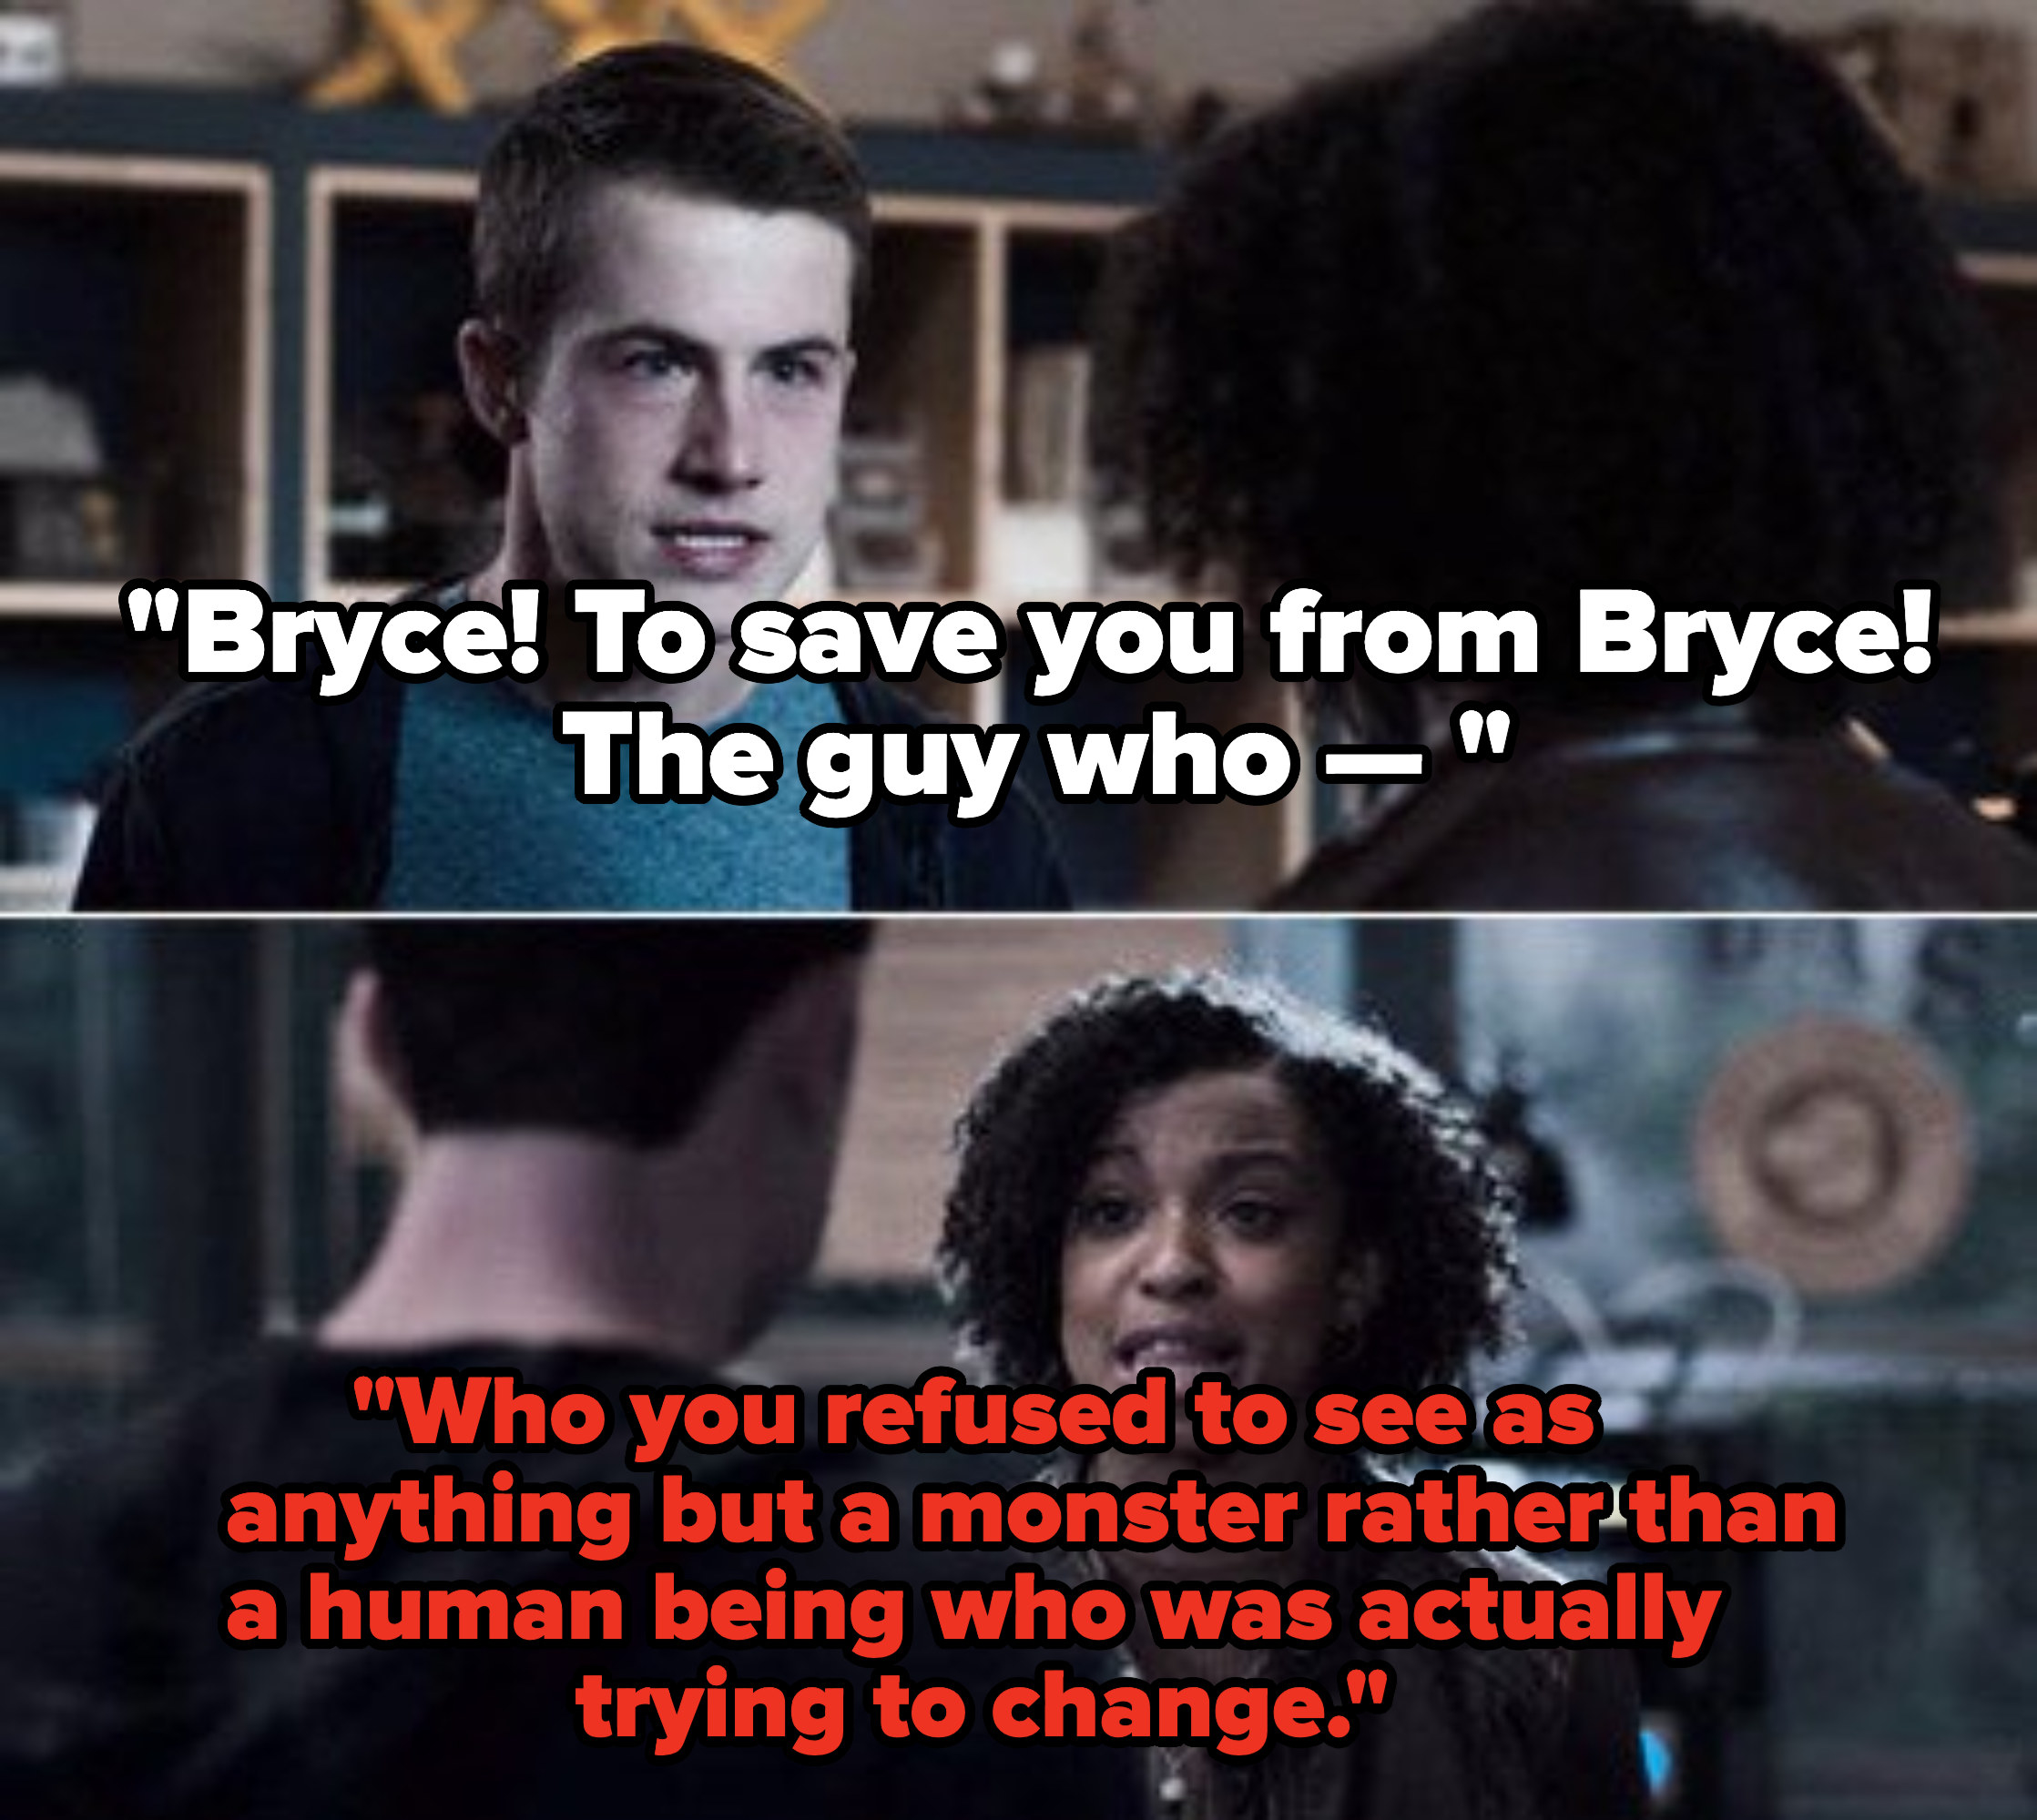 Ani defending Bryce and saying he was trying to become a better person